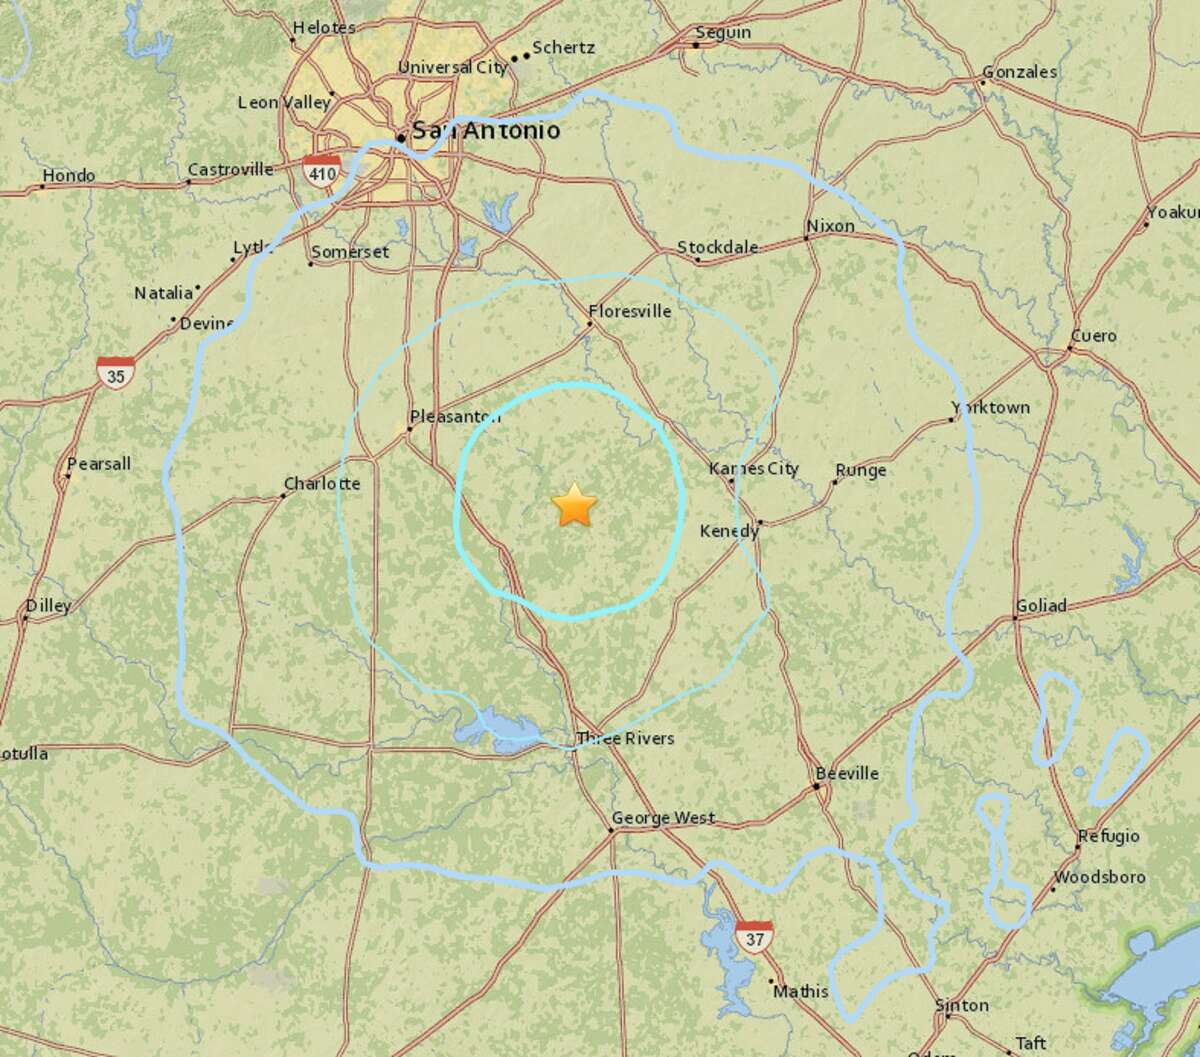 The USGS reports the epicenter of an earthquake that hit Texas Saturday morning, Jan. 6, 2018, was approximately 16 miles southwest of Poth, near Fashing in Atascosa County.